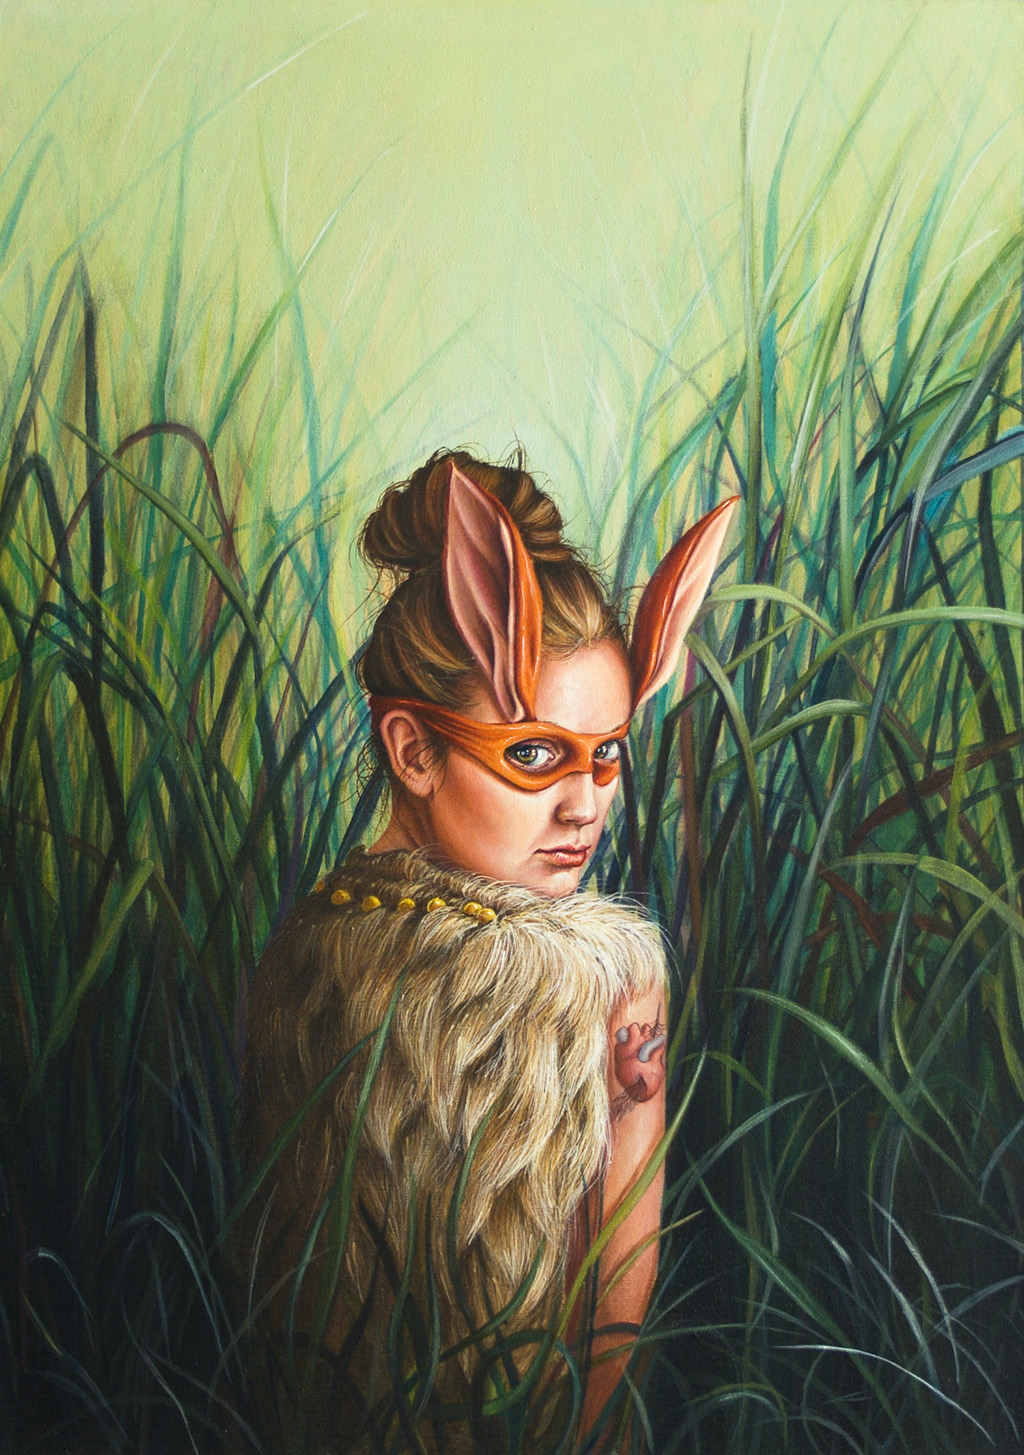 Ewa-Pronczuk-Kuziak-Superhero-oil-on-canvas-50x70cm-3014